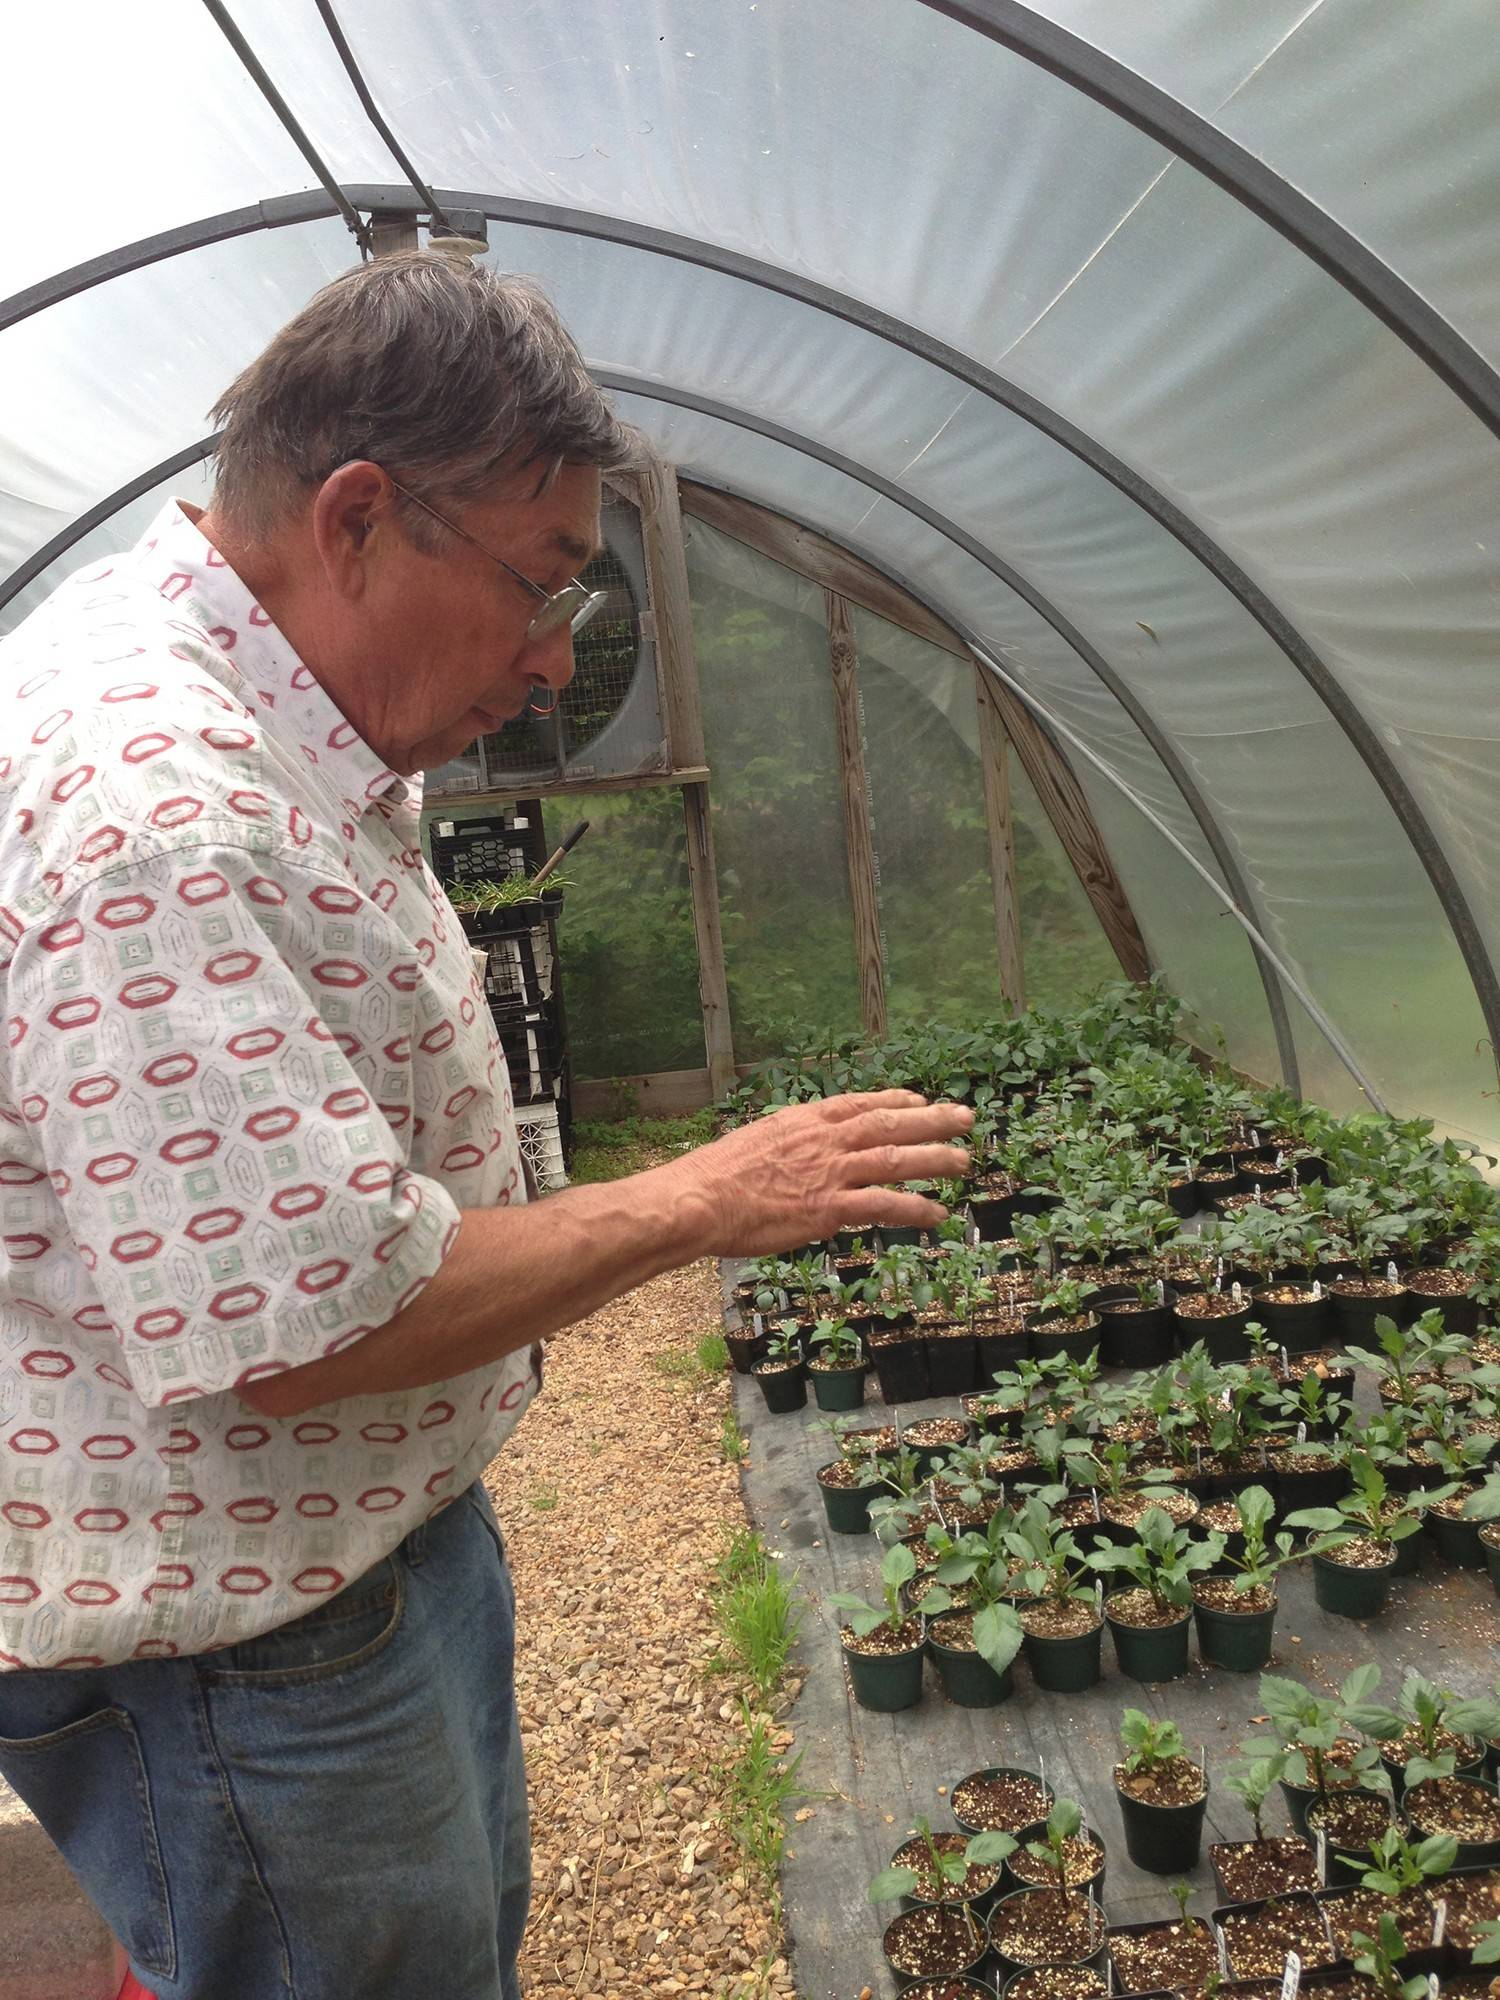 Dahlia grower Nick Weber examines young plants in his greenhouse in Brookeville, Maryland. Dahlias have staged a comeback since falling out of favor over a decade ago.